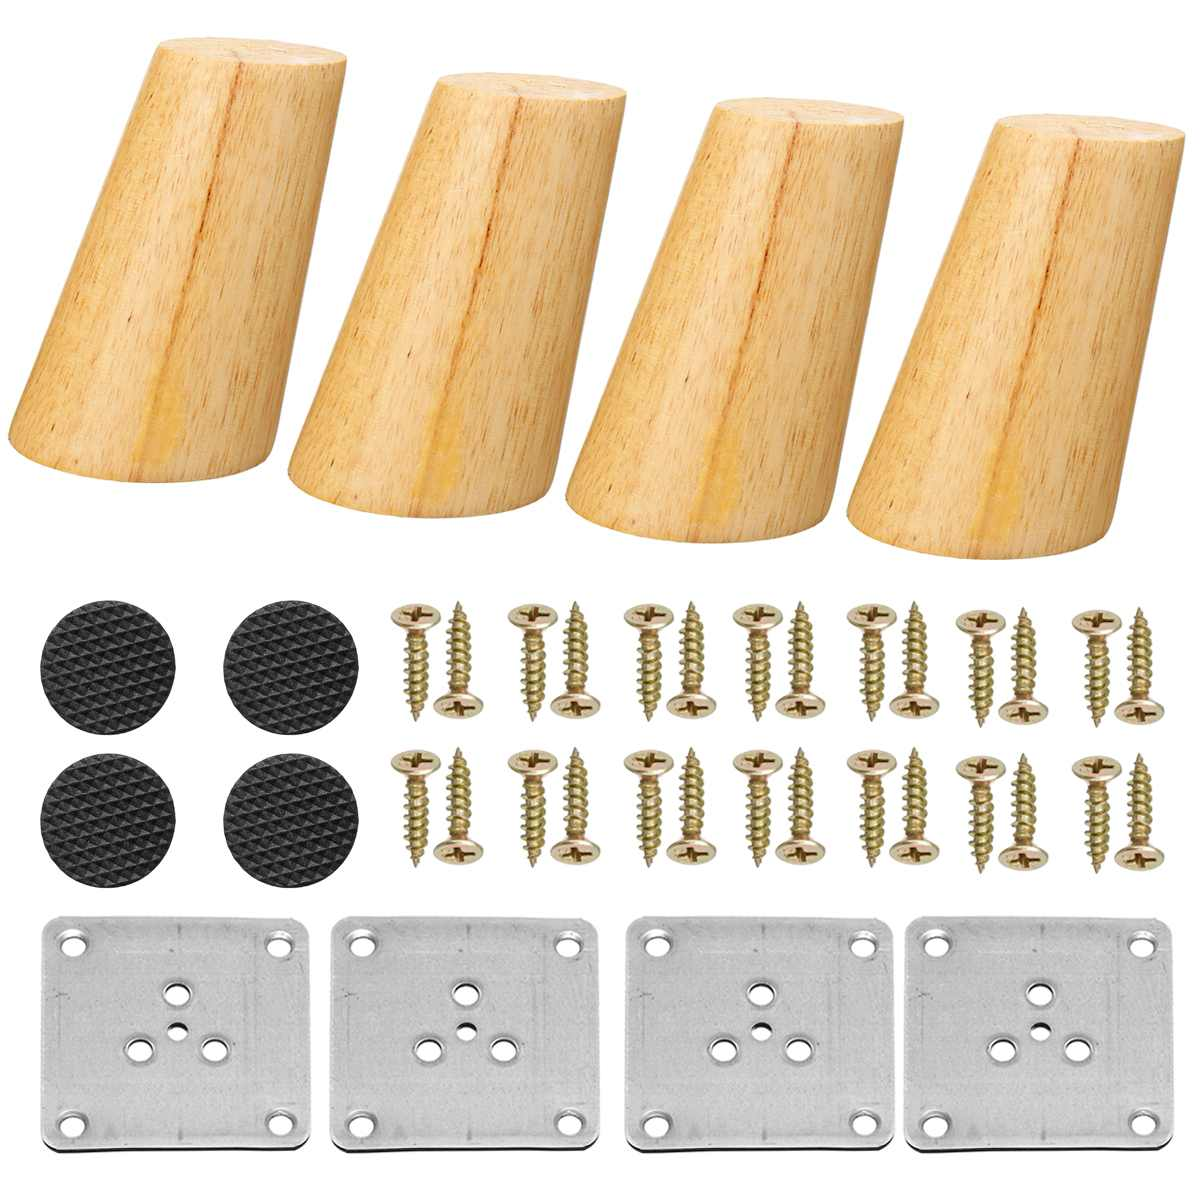 4pcs/lot Solid Wooden Oblique Angle Sofa Legs Feet Coffee Table Furniture Legs With Anti-skid Pad For Cabinets Tables 4 Size